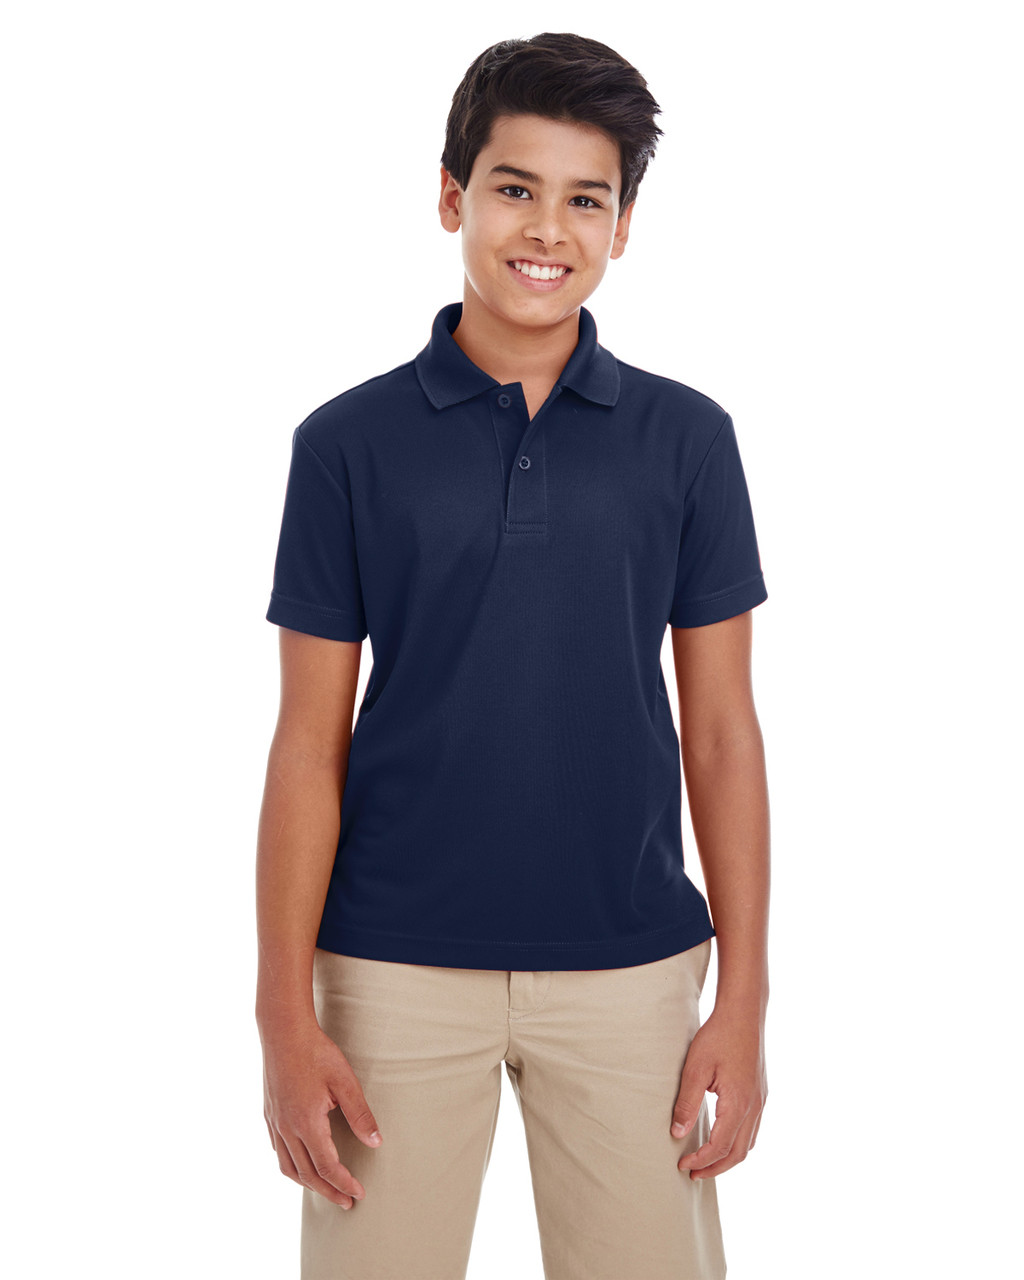 Black - 88181Y Ash City - Core 365 Youth Origin Performance Pique Polo Shirt | Blankclothing.ca